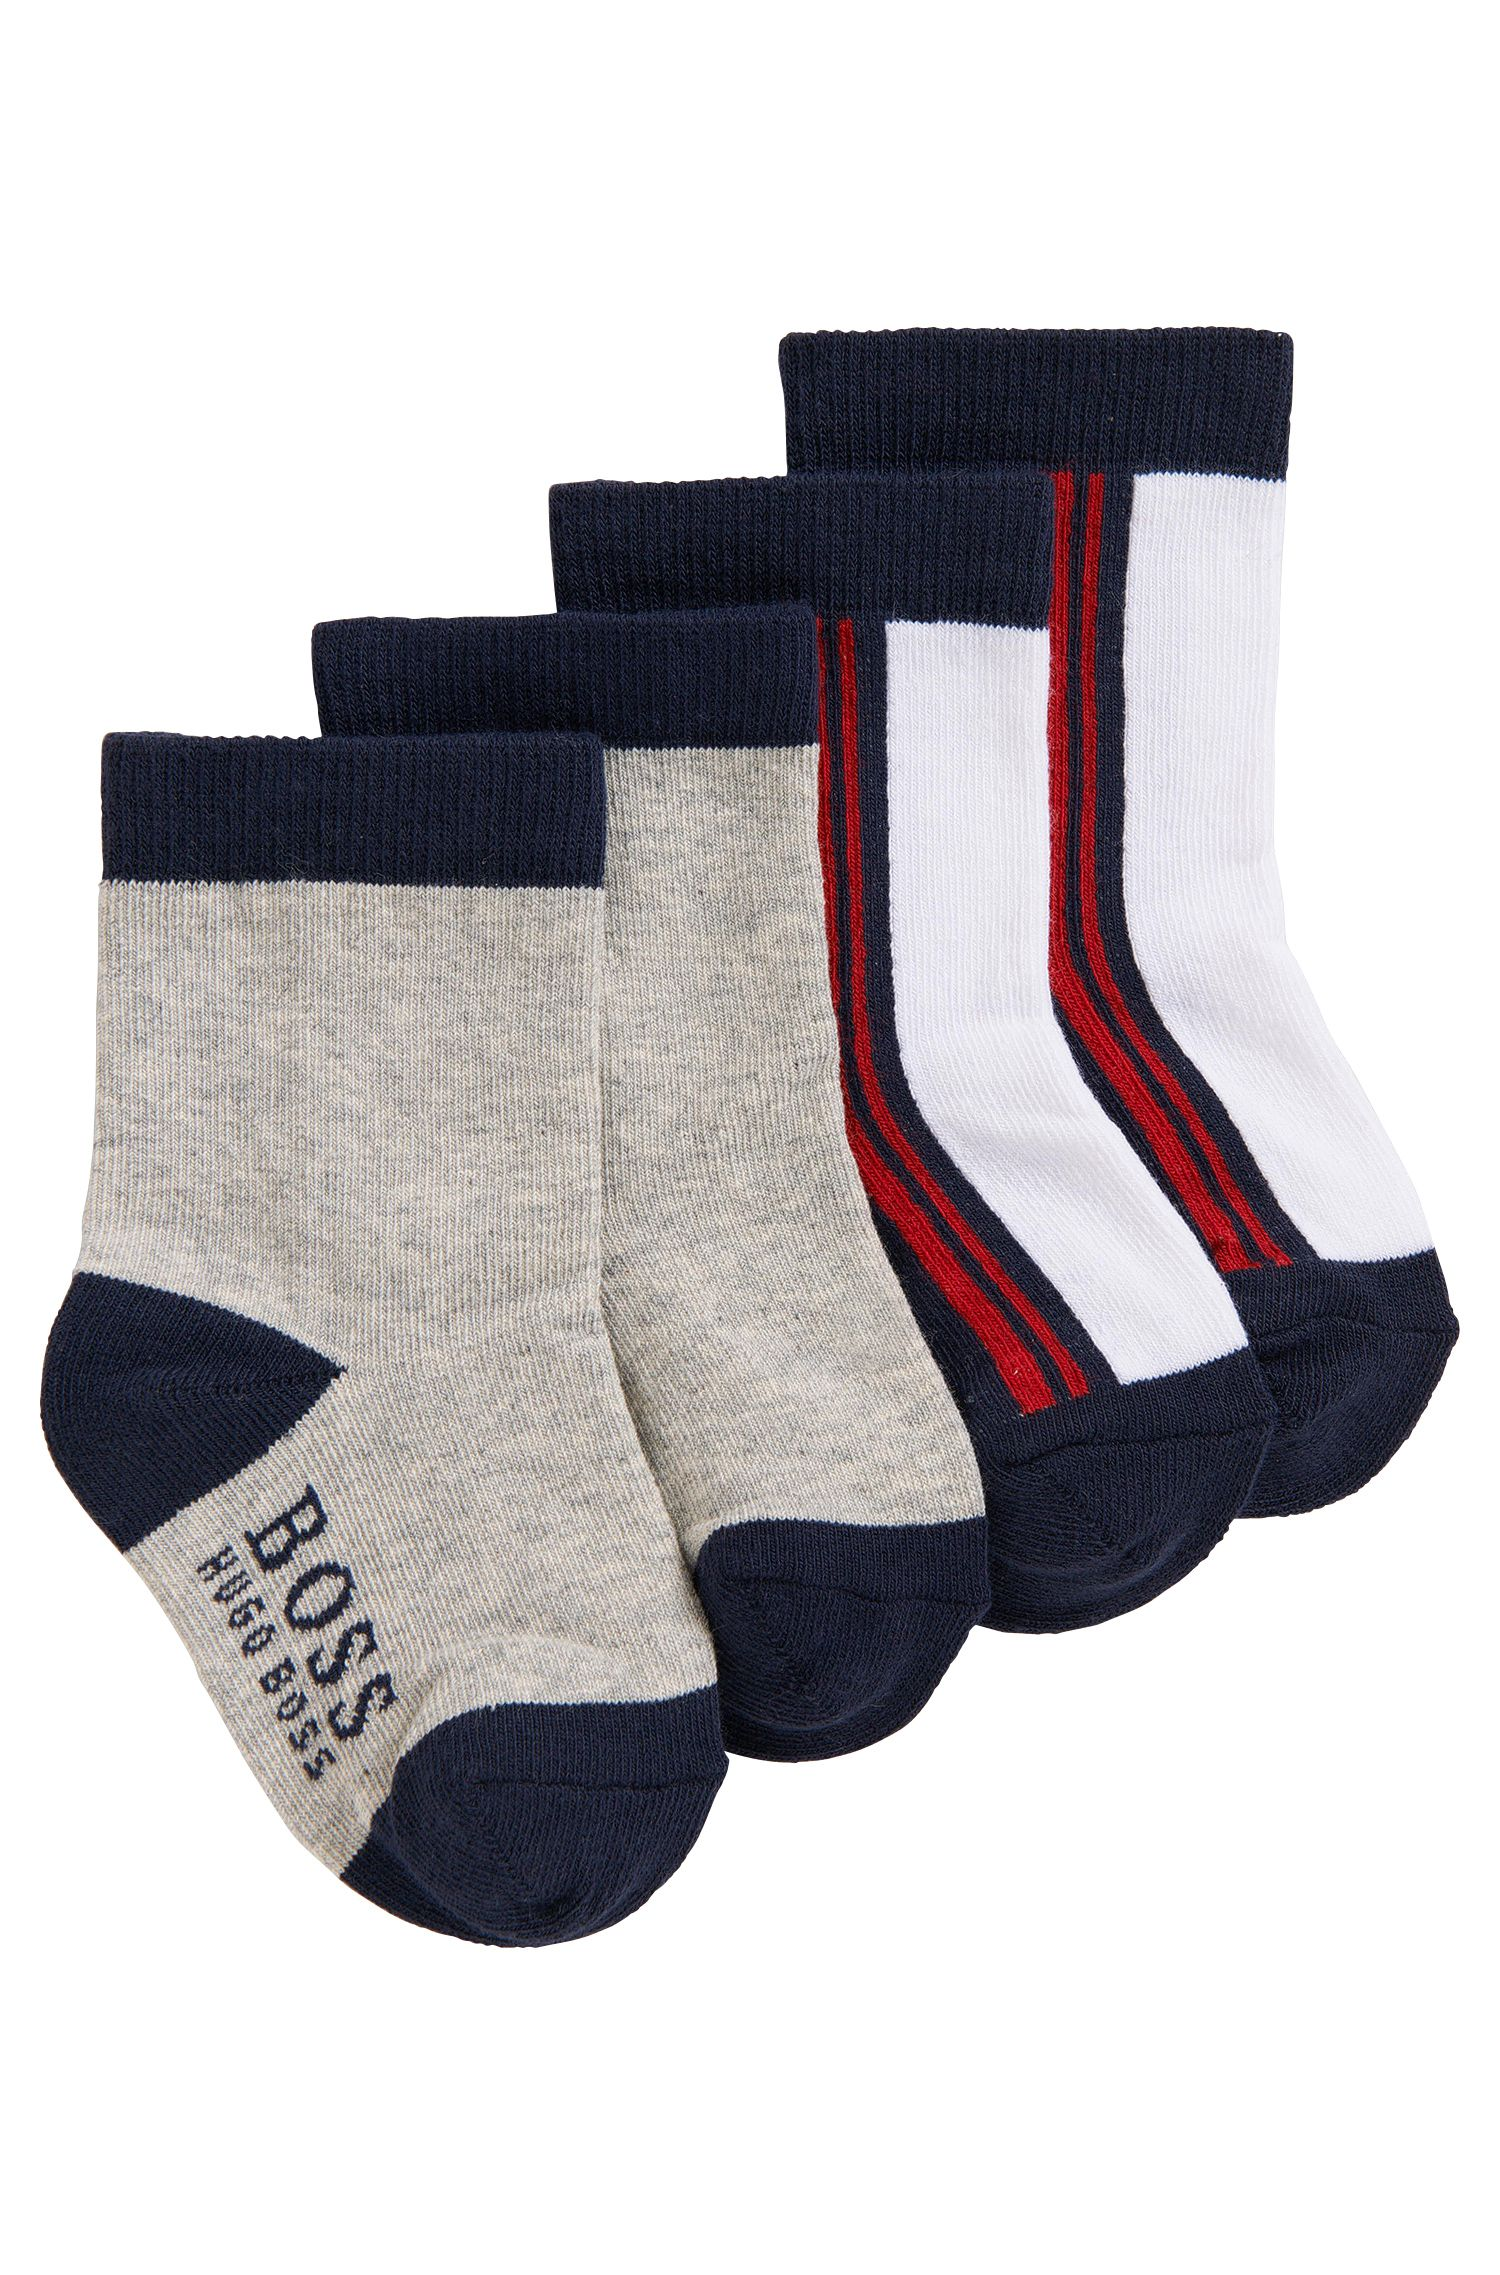 'J00061' | Two Pack Striped and Colorblock Socks